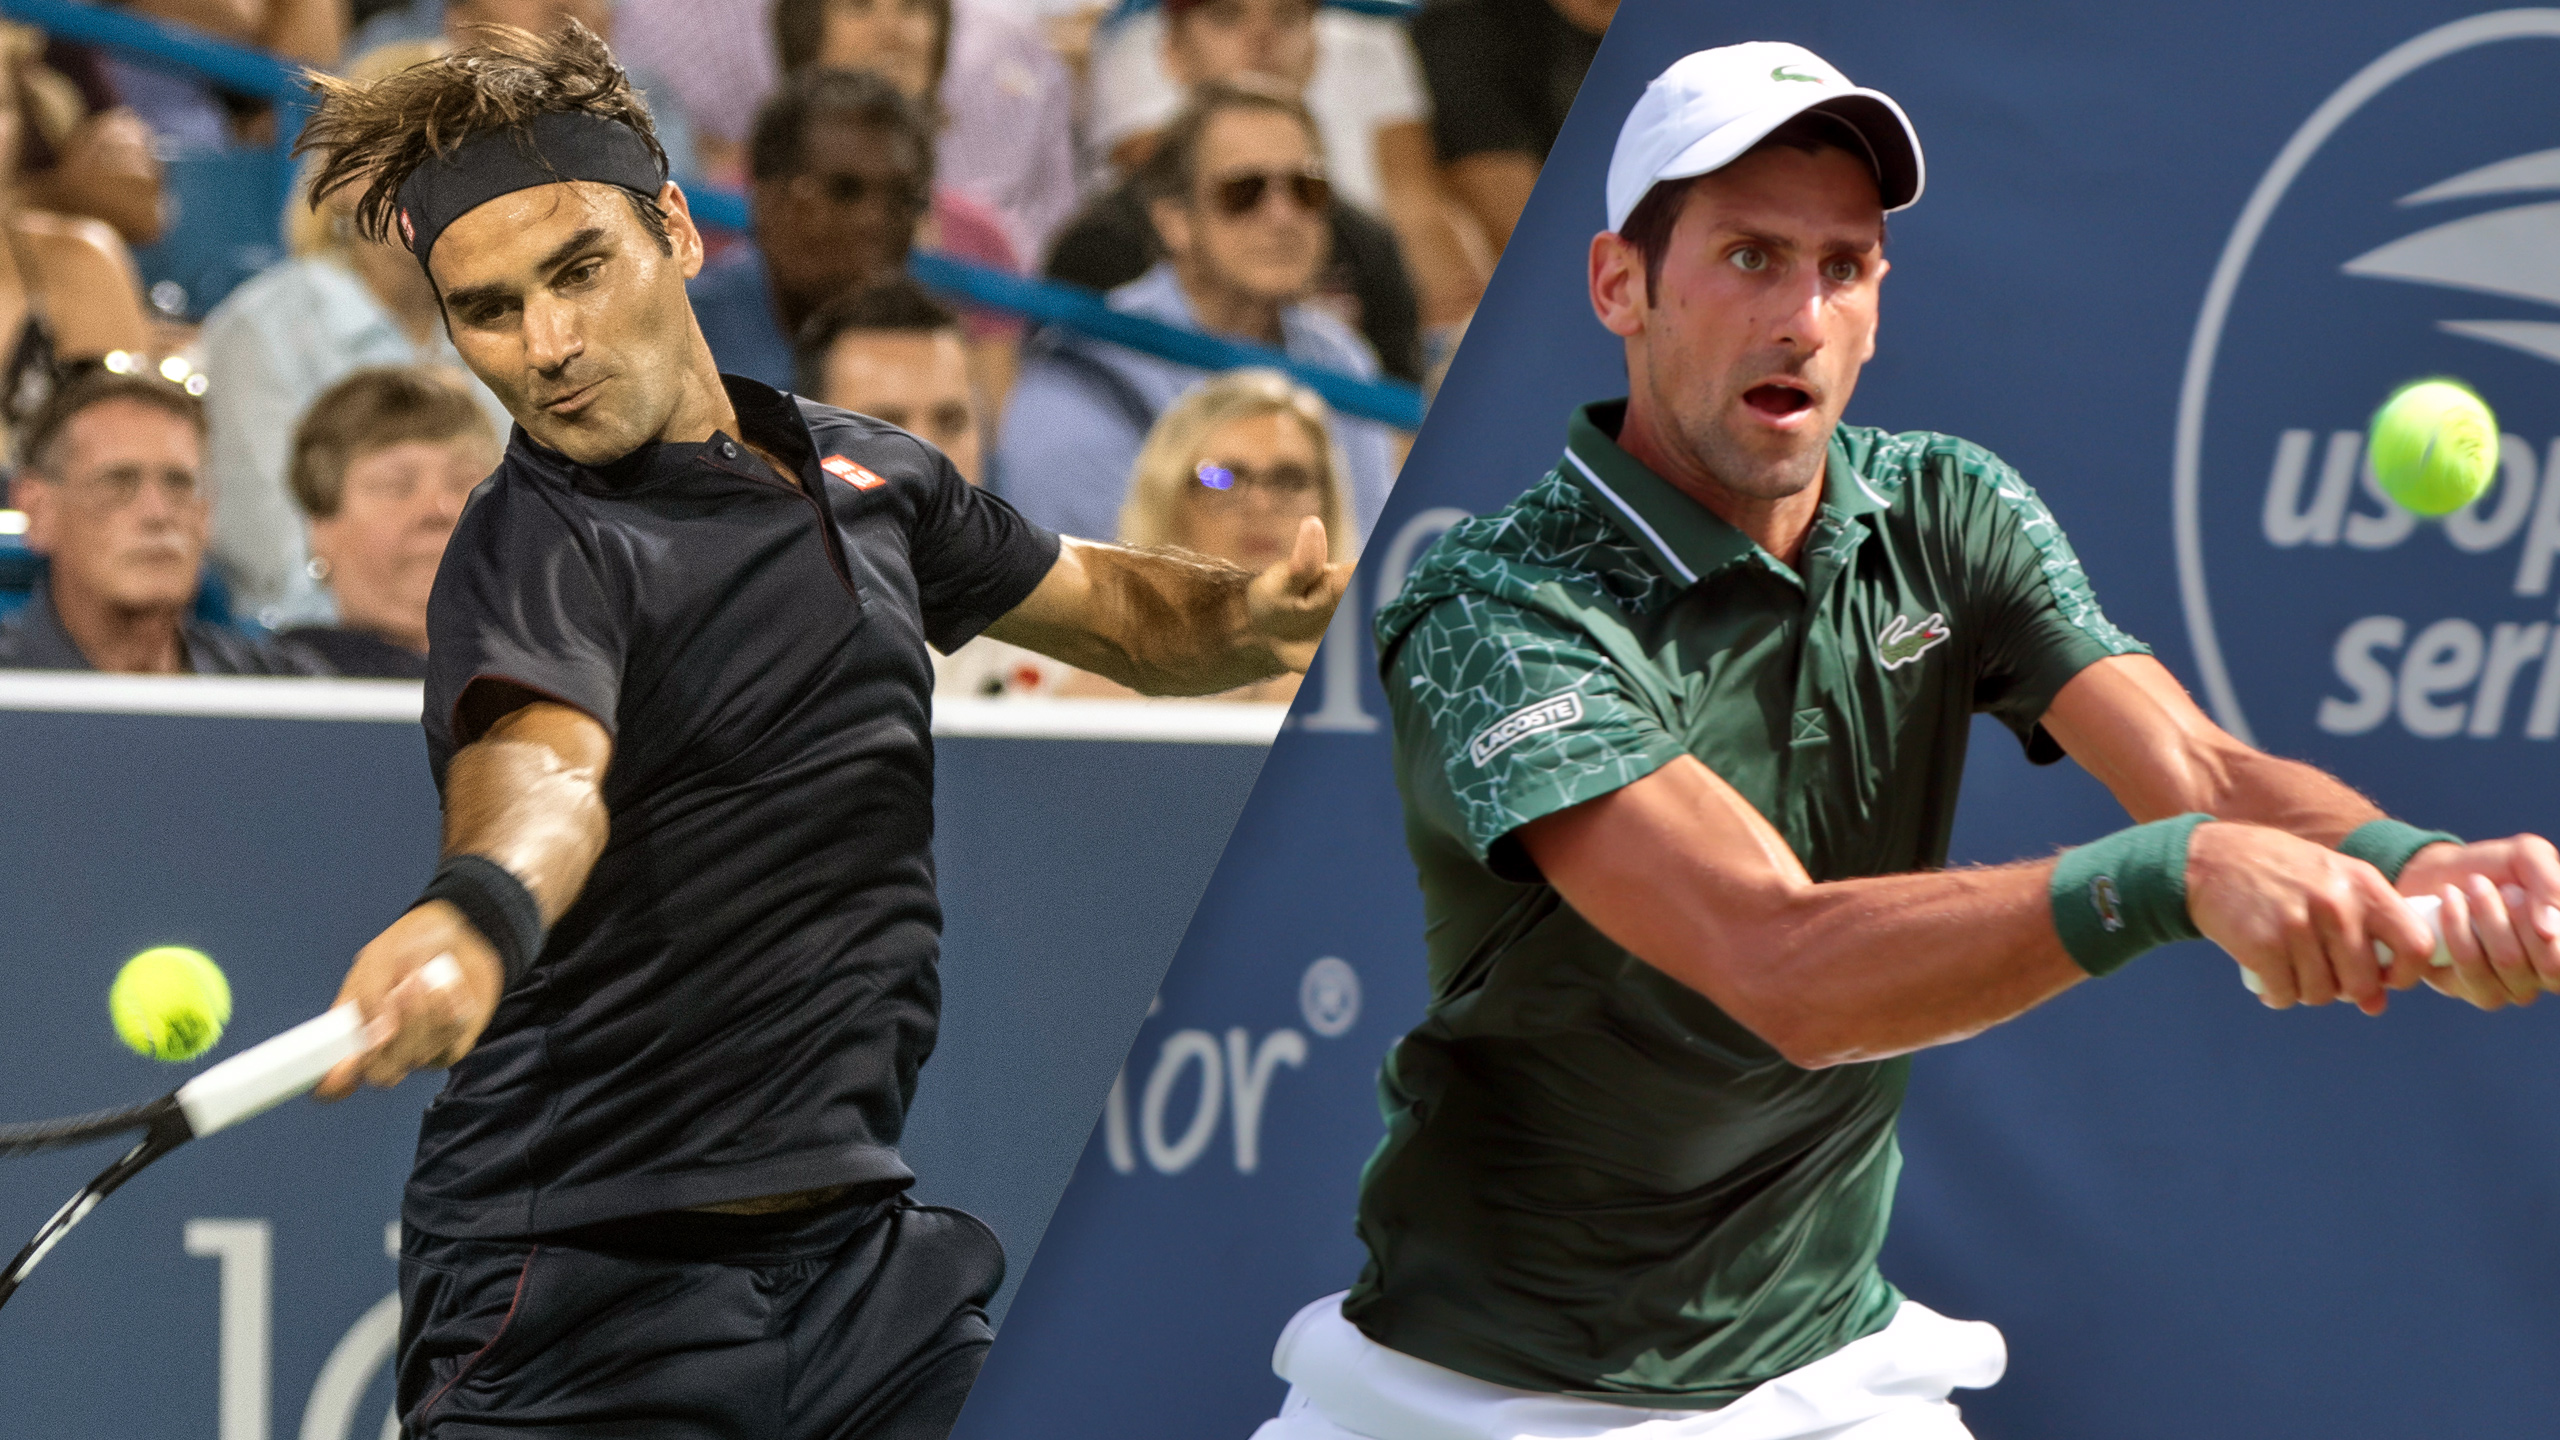 2018 US Open Series - Western & Southern Open (Men's Championship)